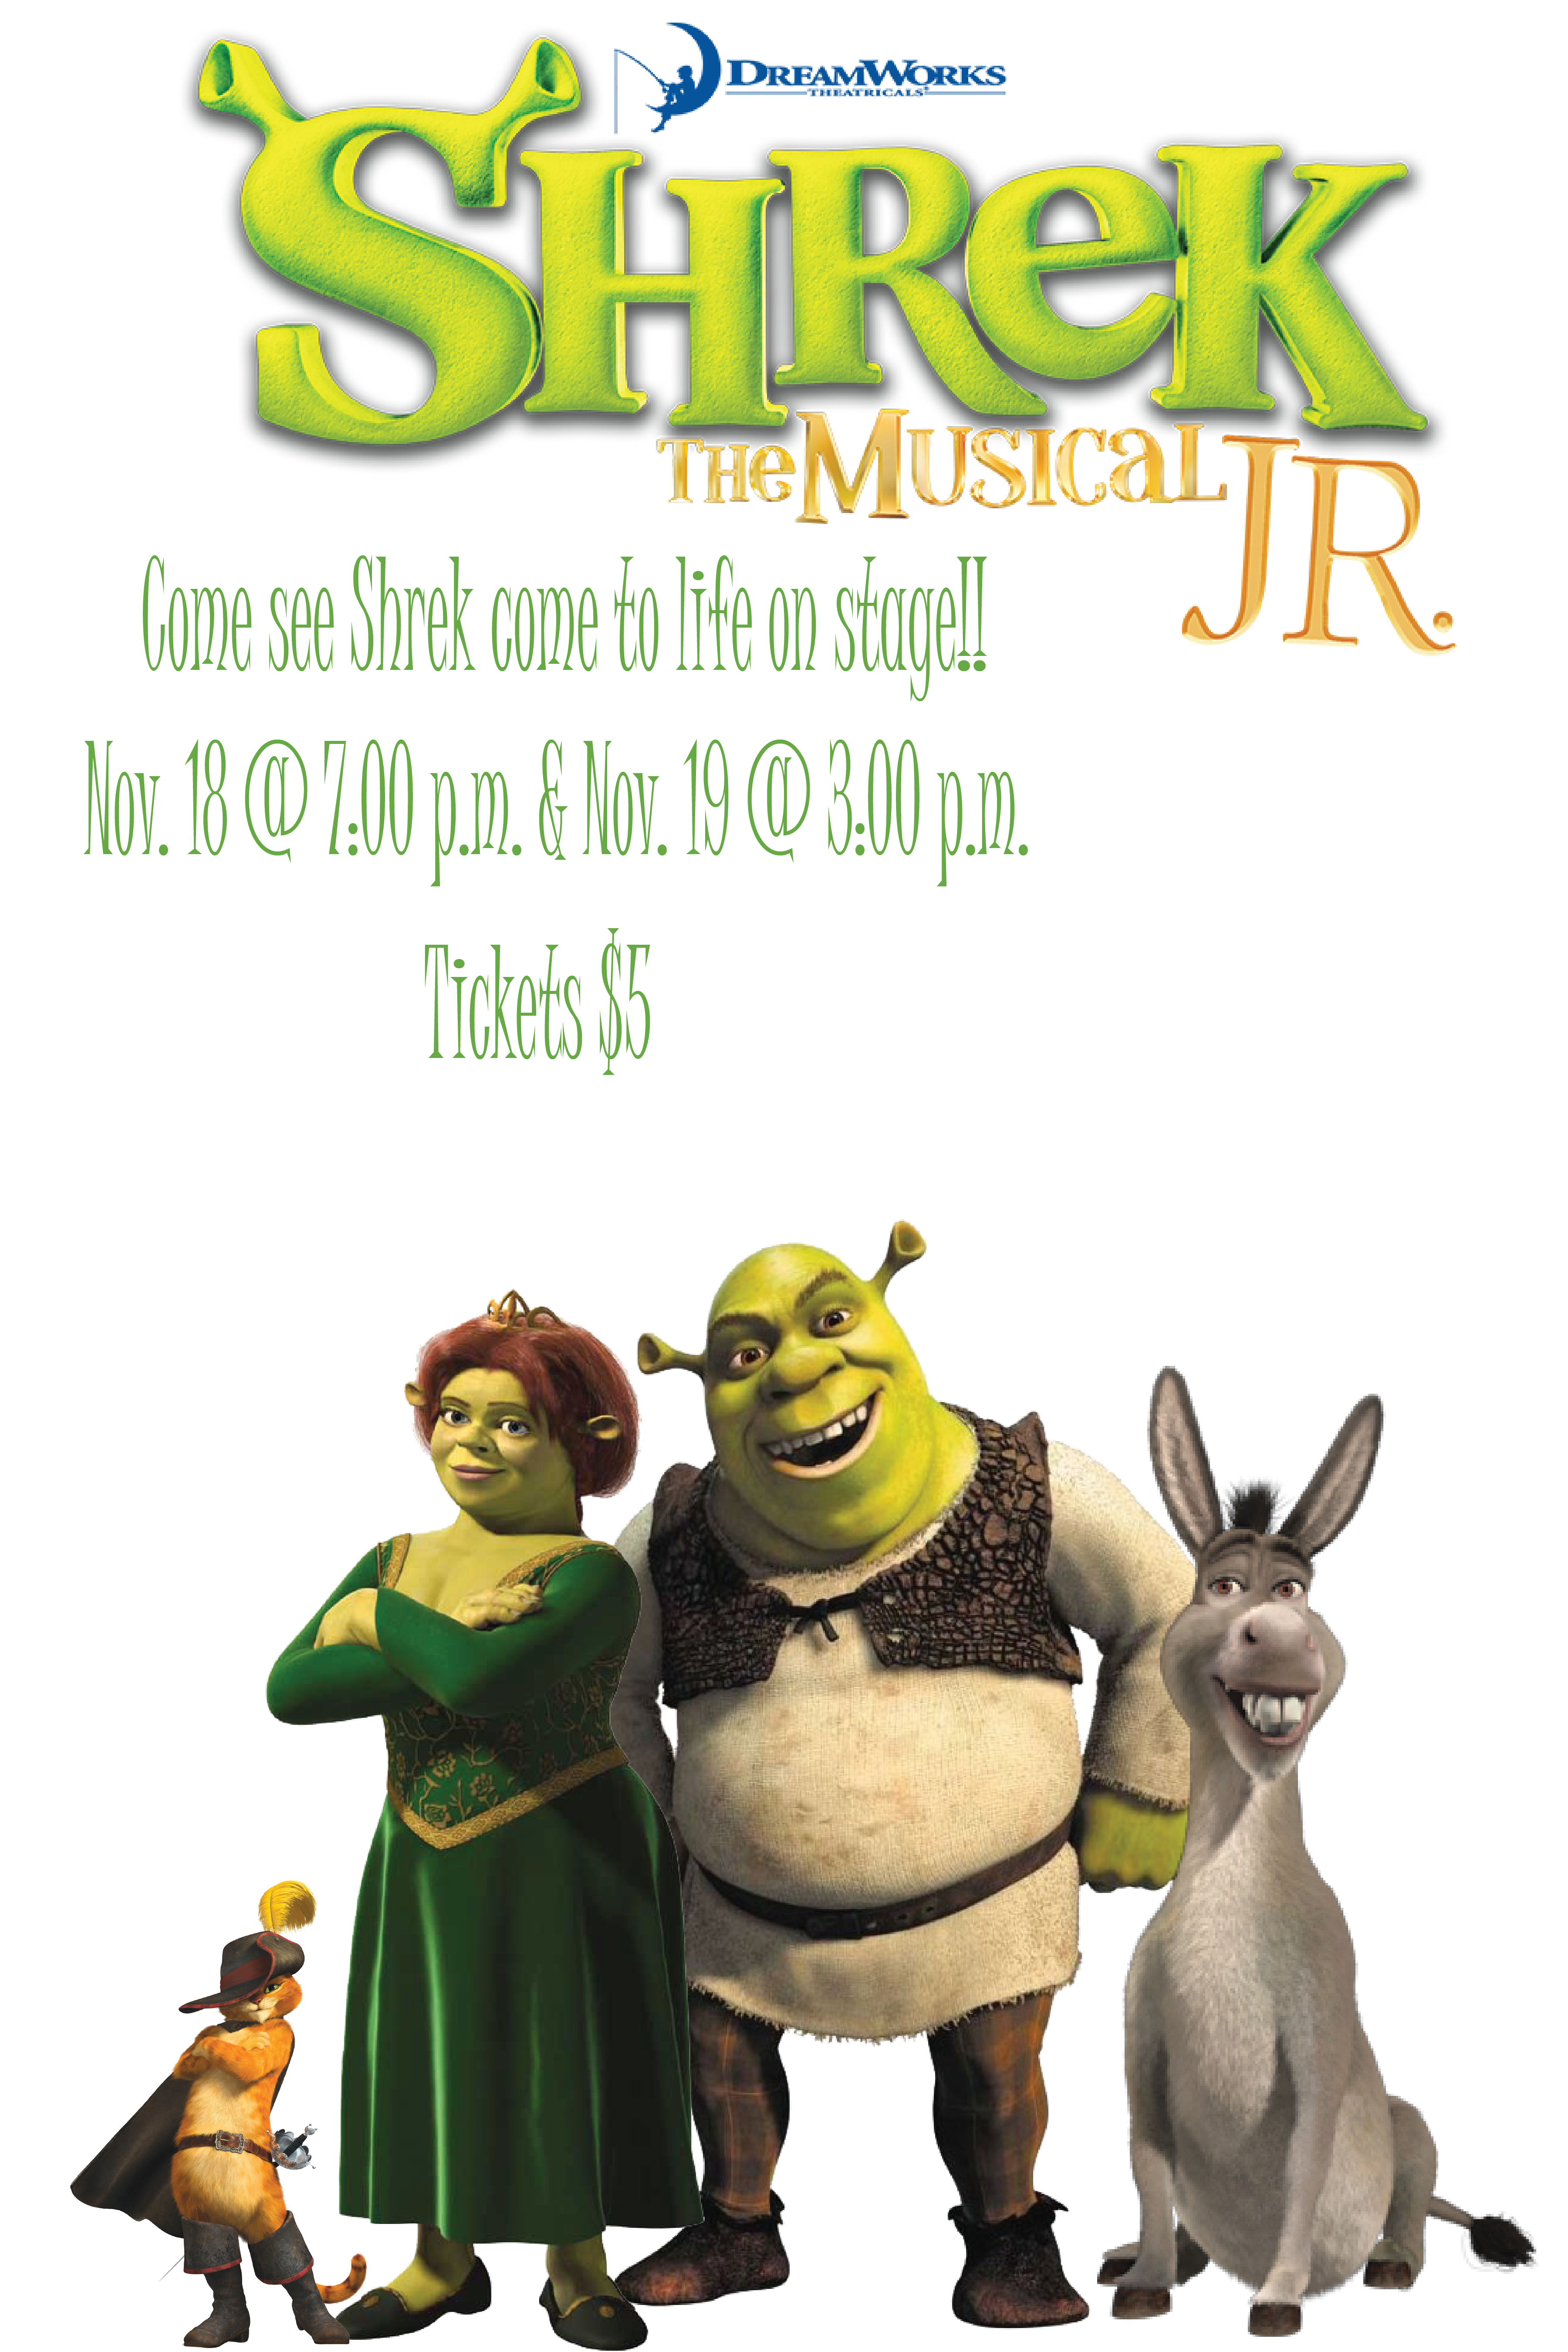 shrek jr poster (2)-01